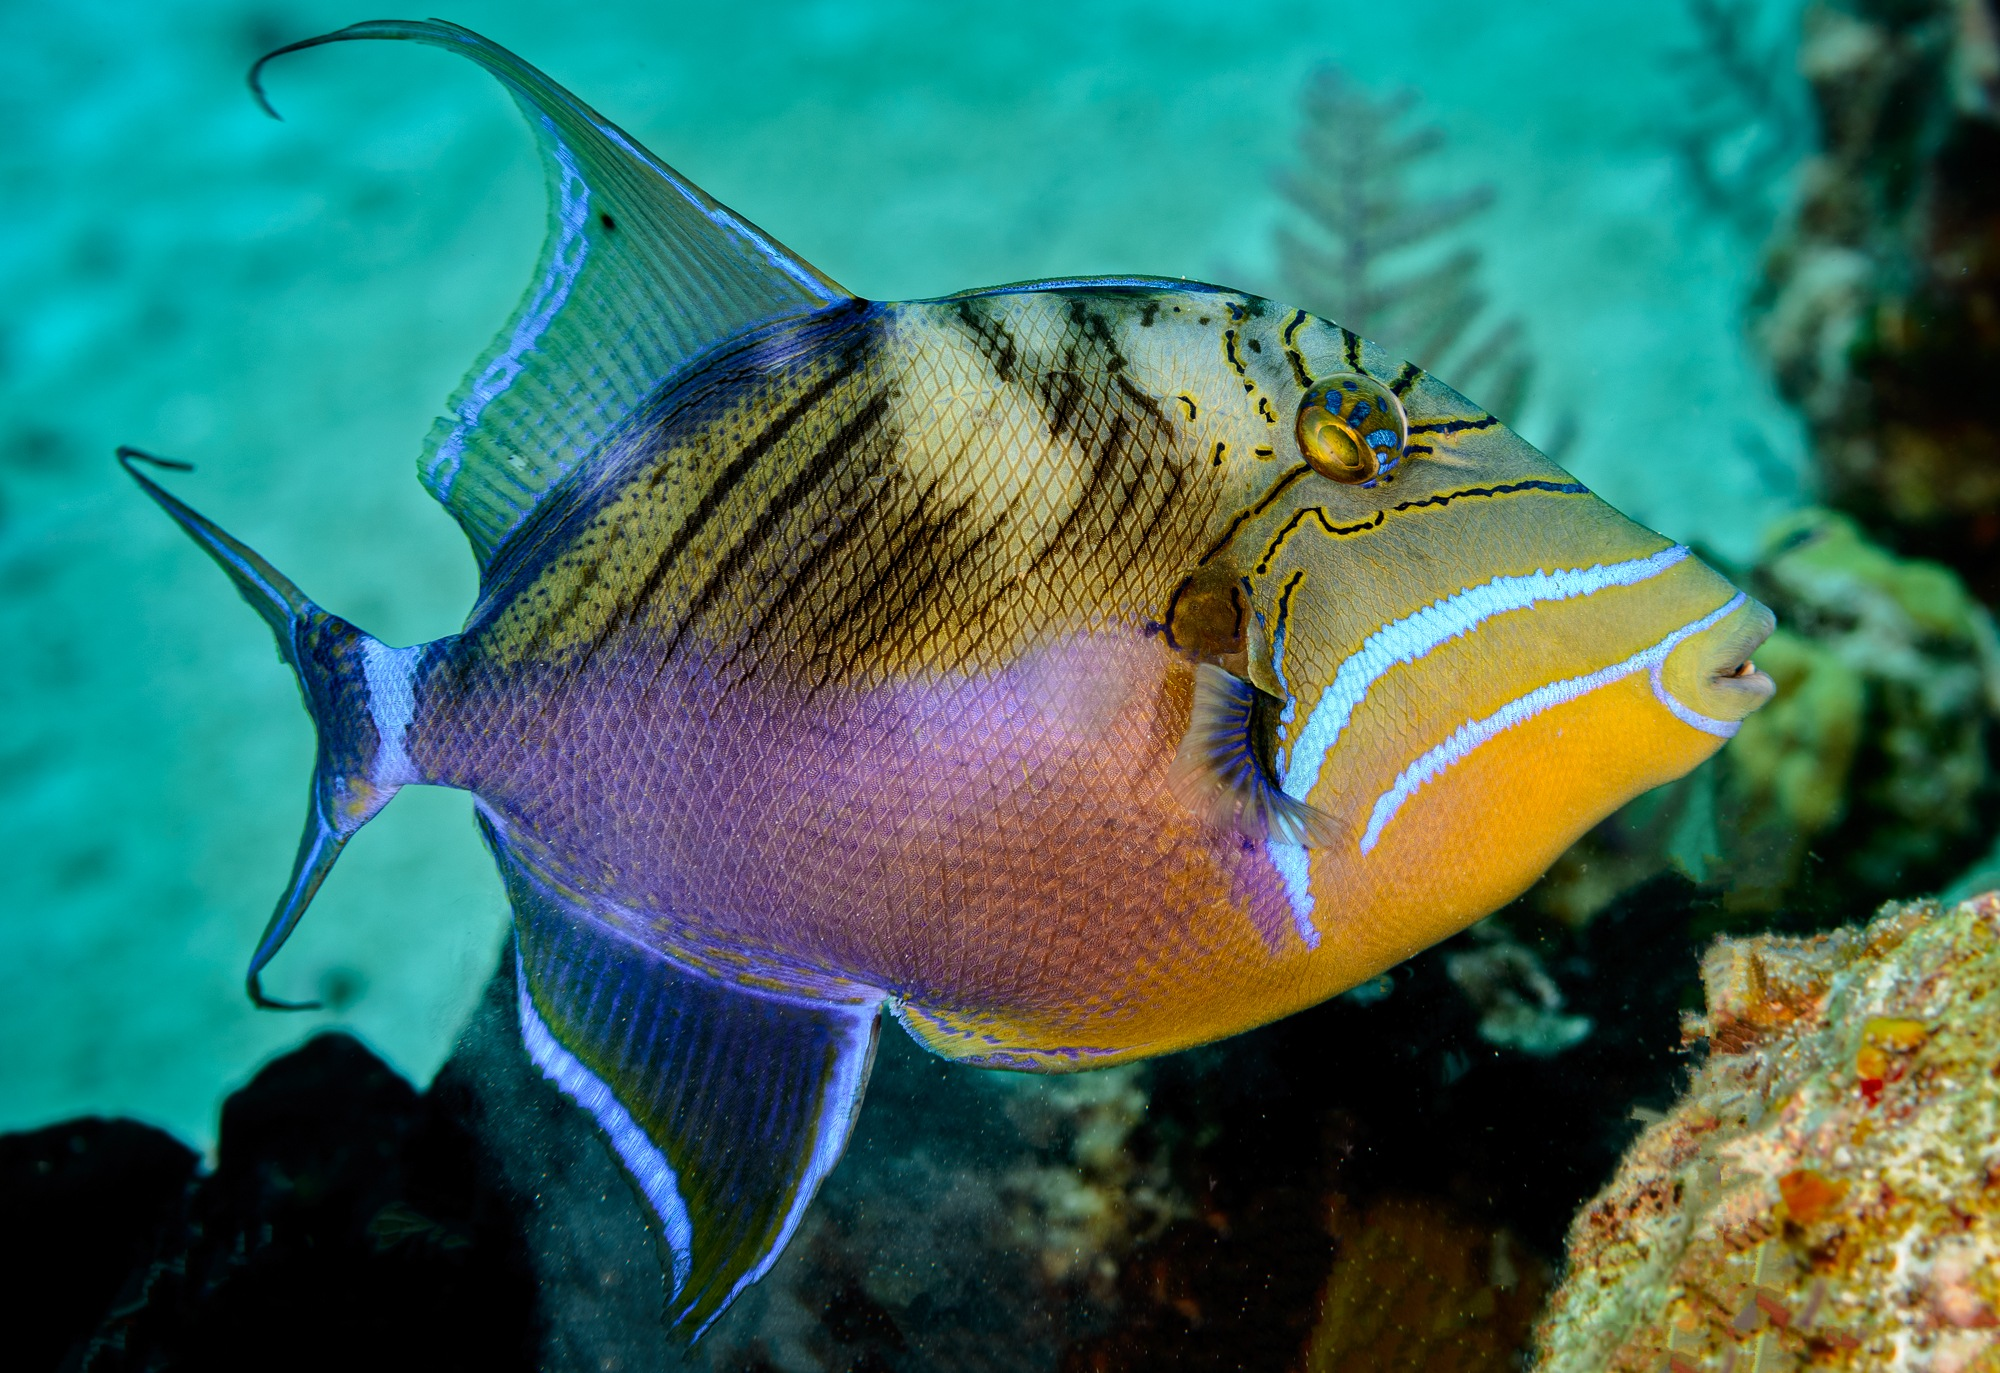 Queen Triggerfish by Steve Director